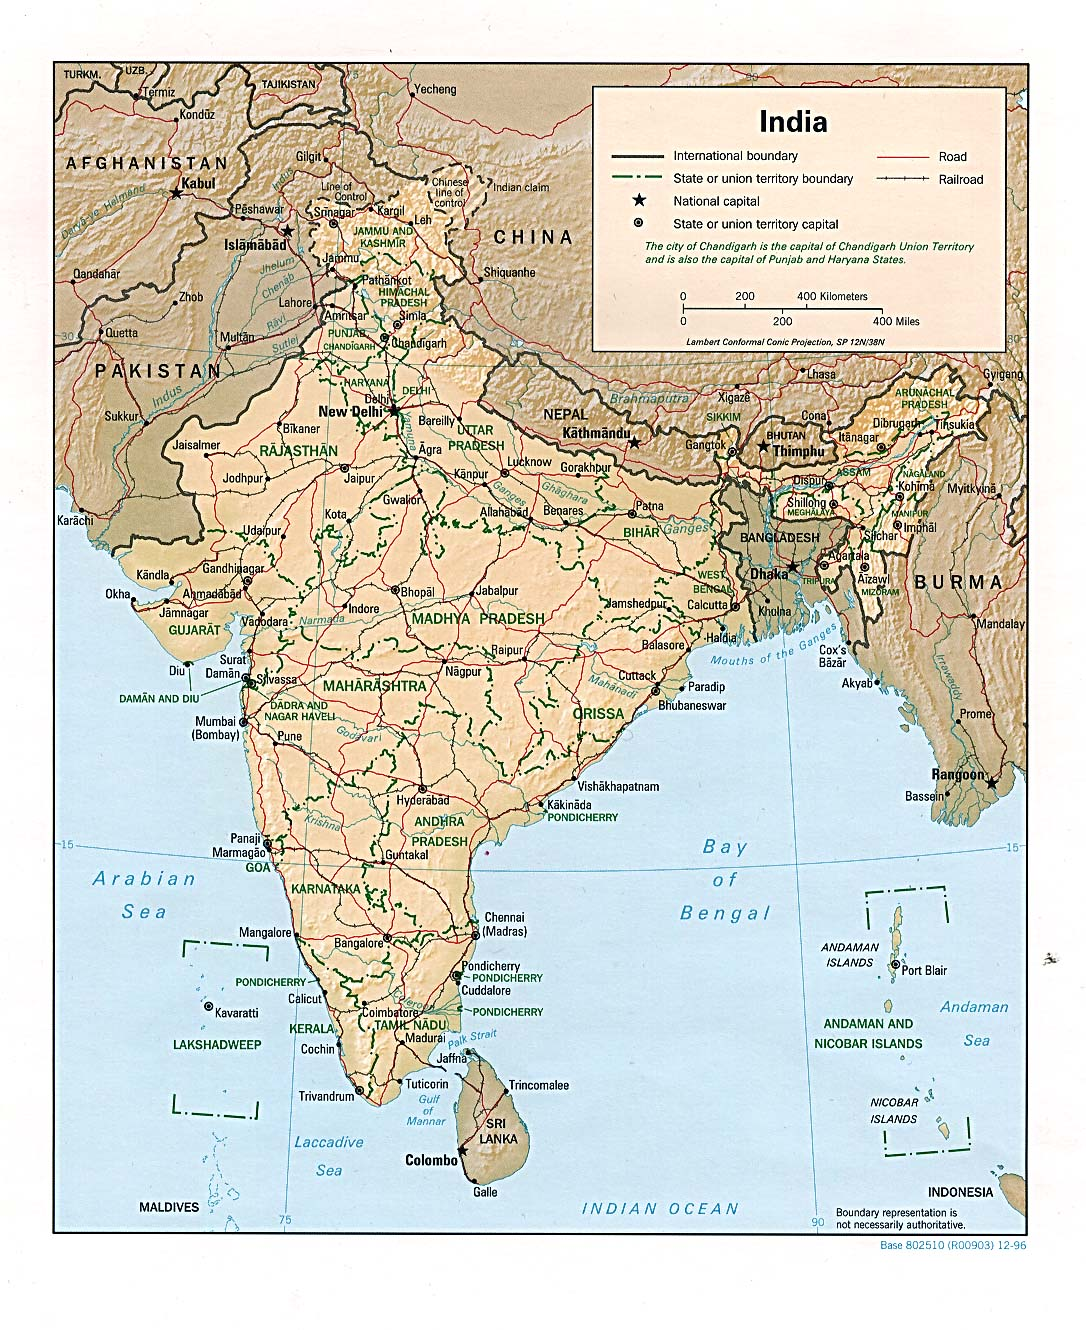 India maps perry castaeda map collection ut library online map collection gumiabroncs Images